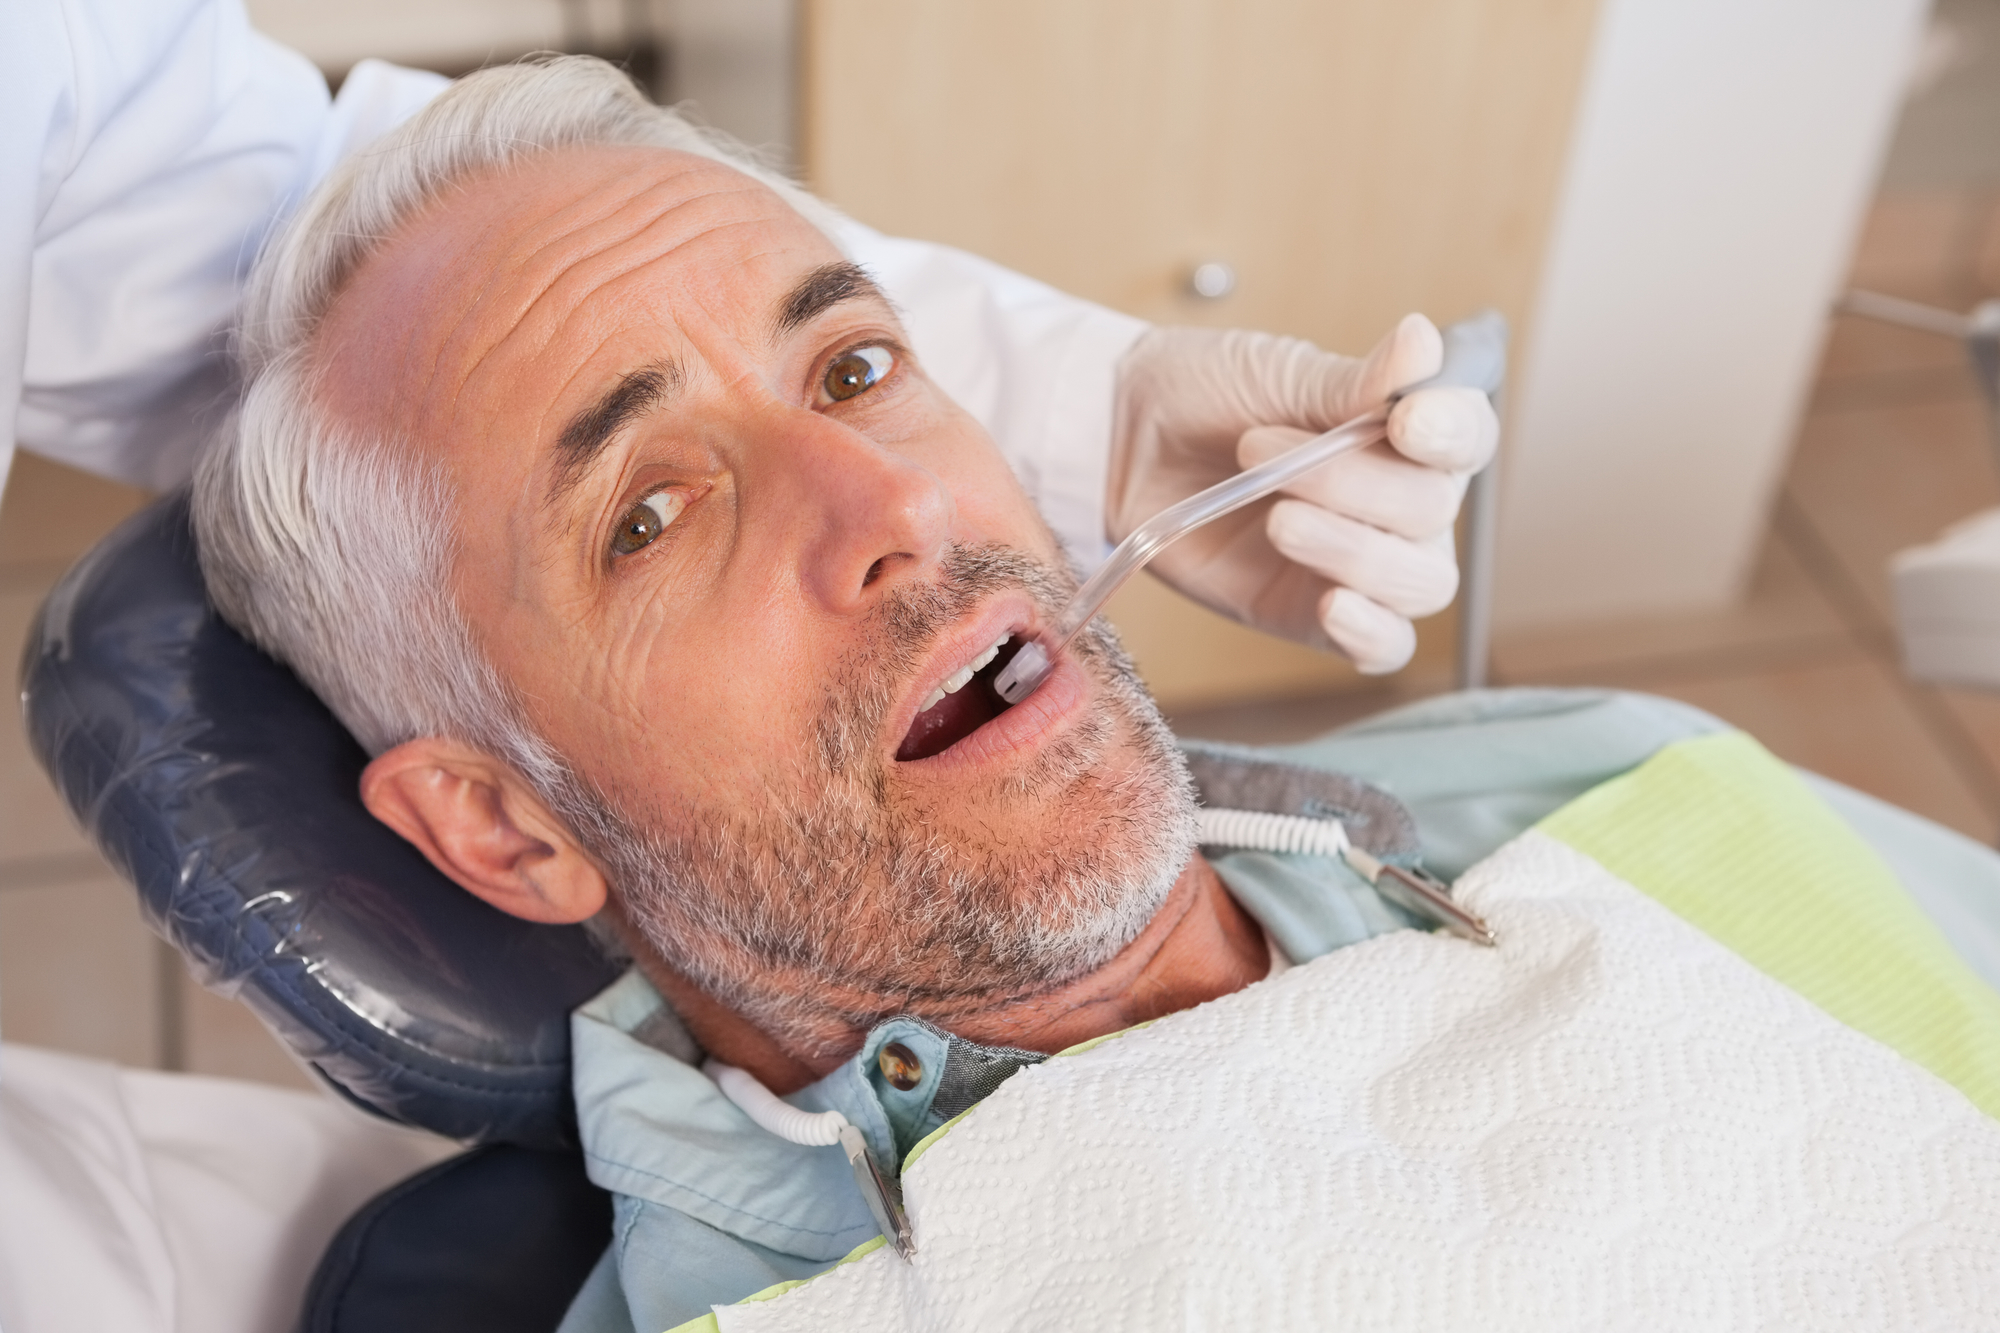 who does a tooth extraction west palm beach?